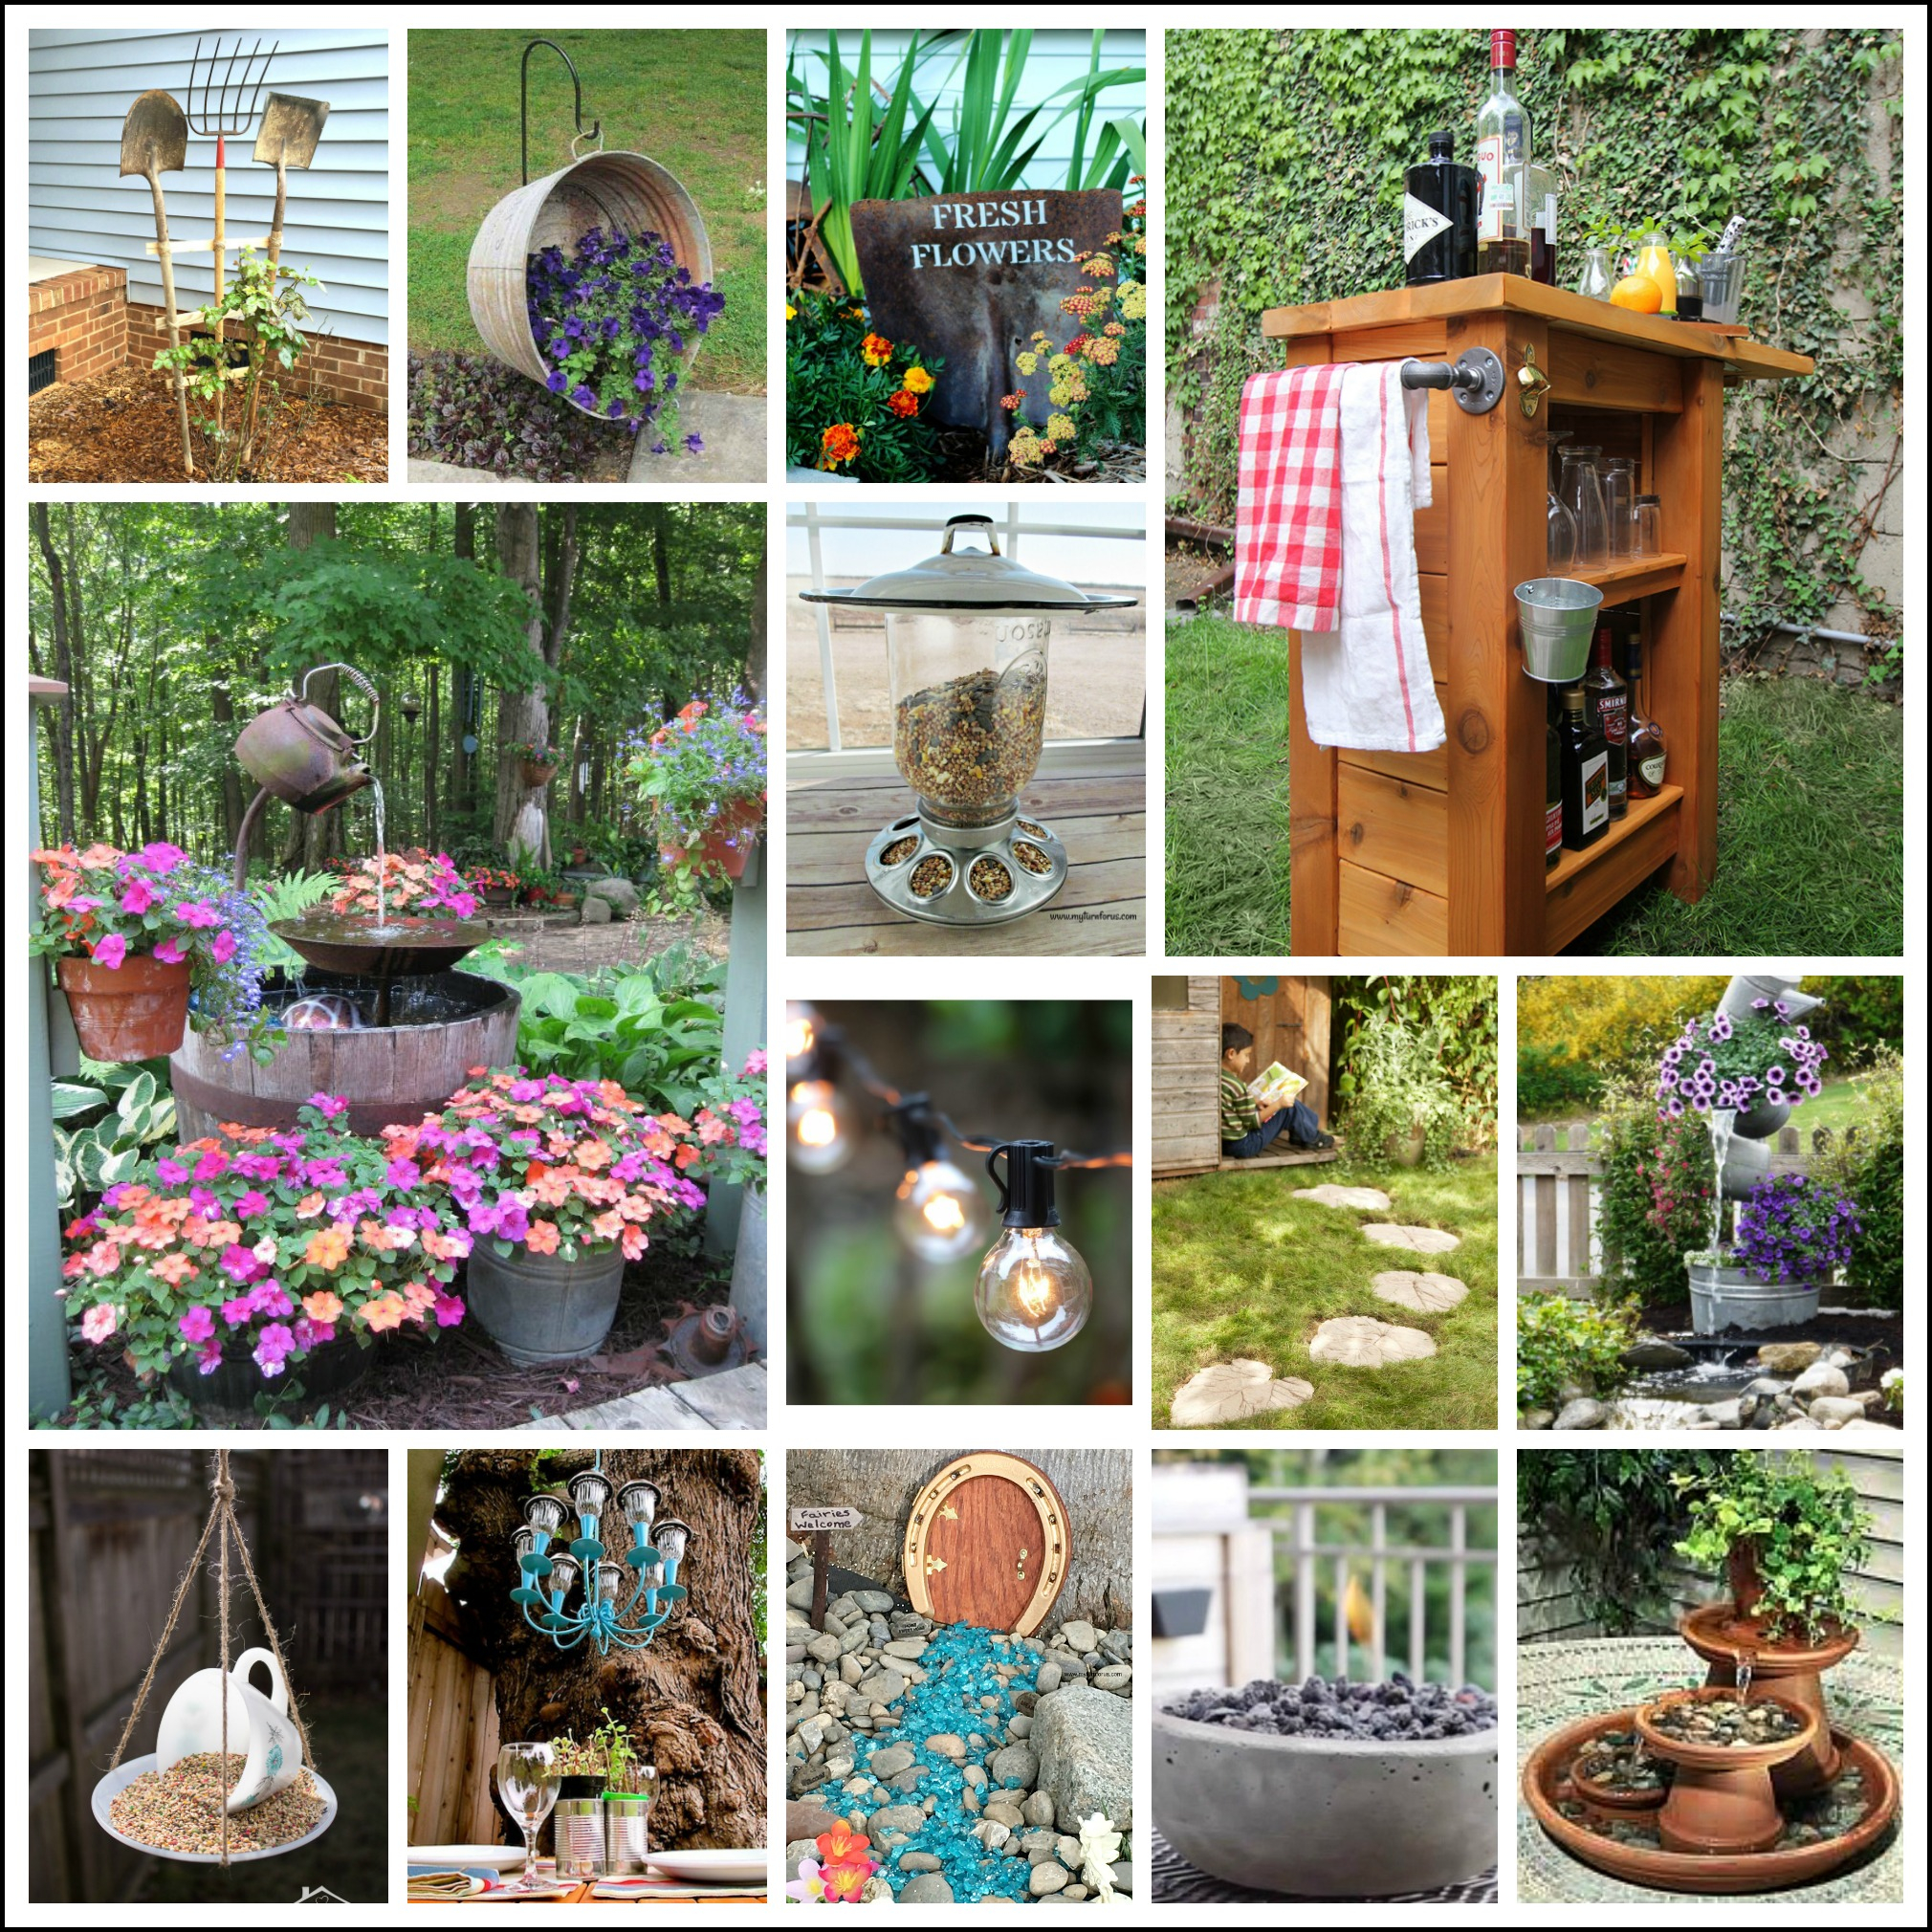 Outdoors Truly Enjoyable Summertime Ventures With Diy Backyard for 14 Clever Concepts of How to Build DIY Backyard Landscape Design